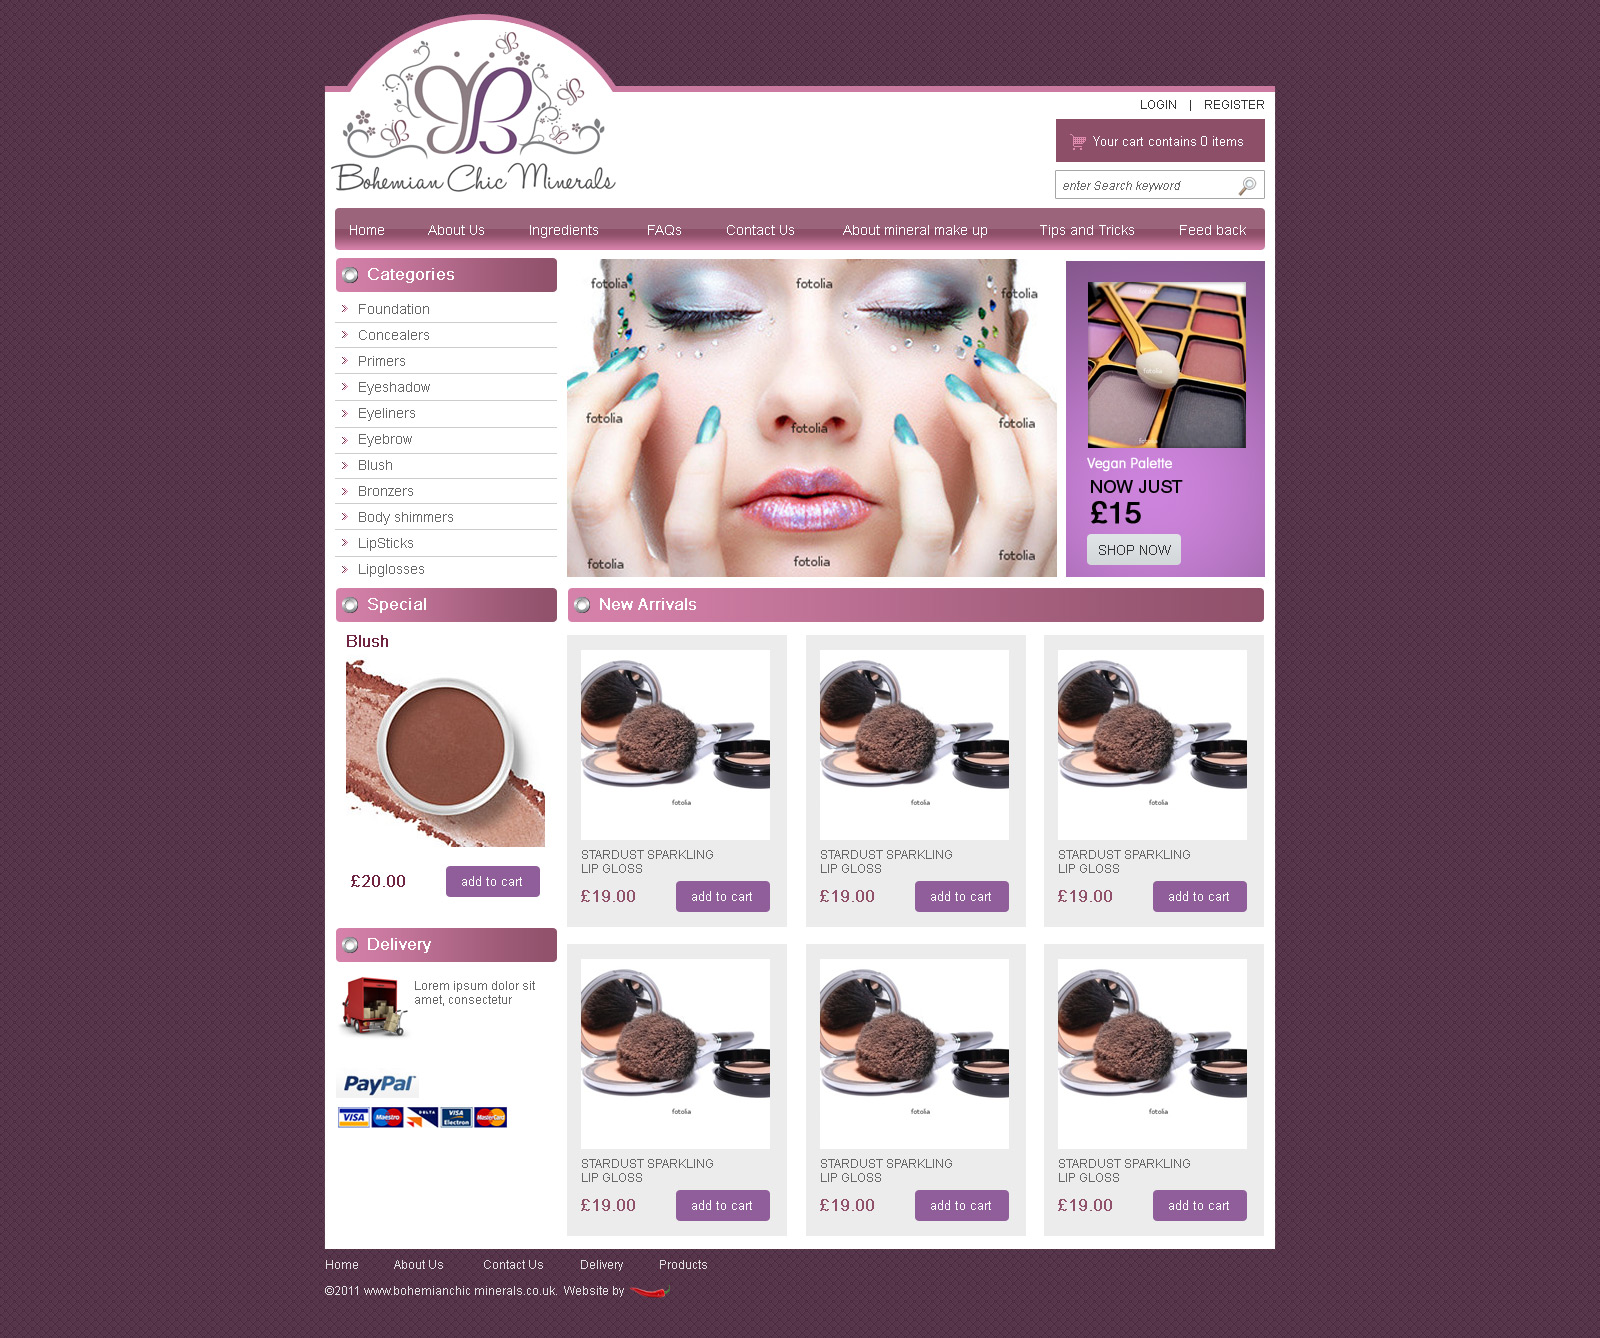 eCommerce Website Design, ecom website design, ecommerce web design, online shop website, online shop